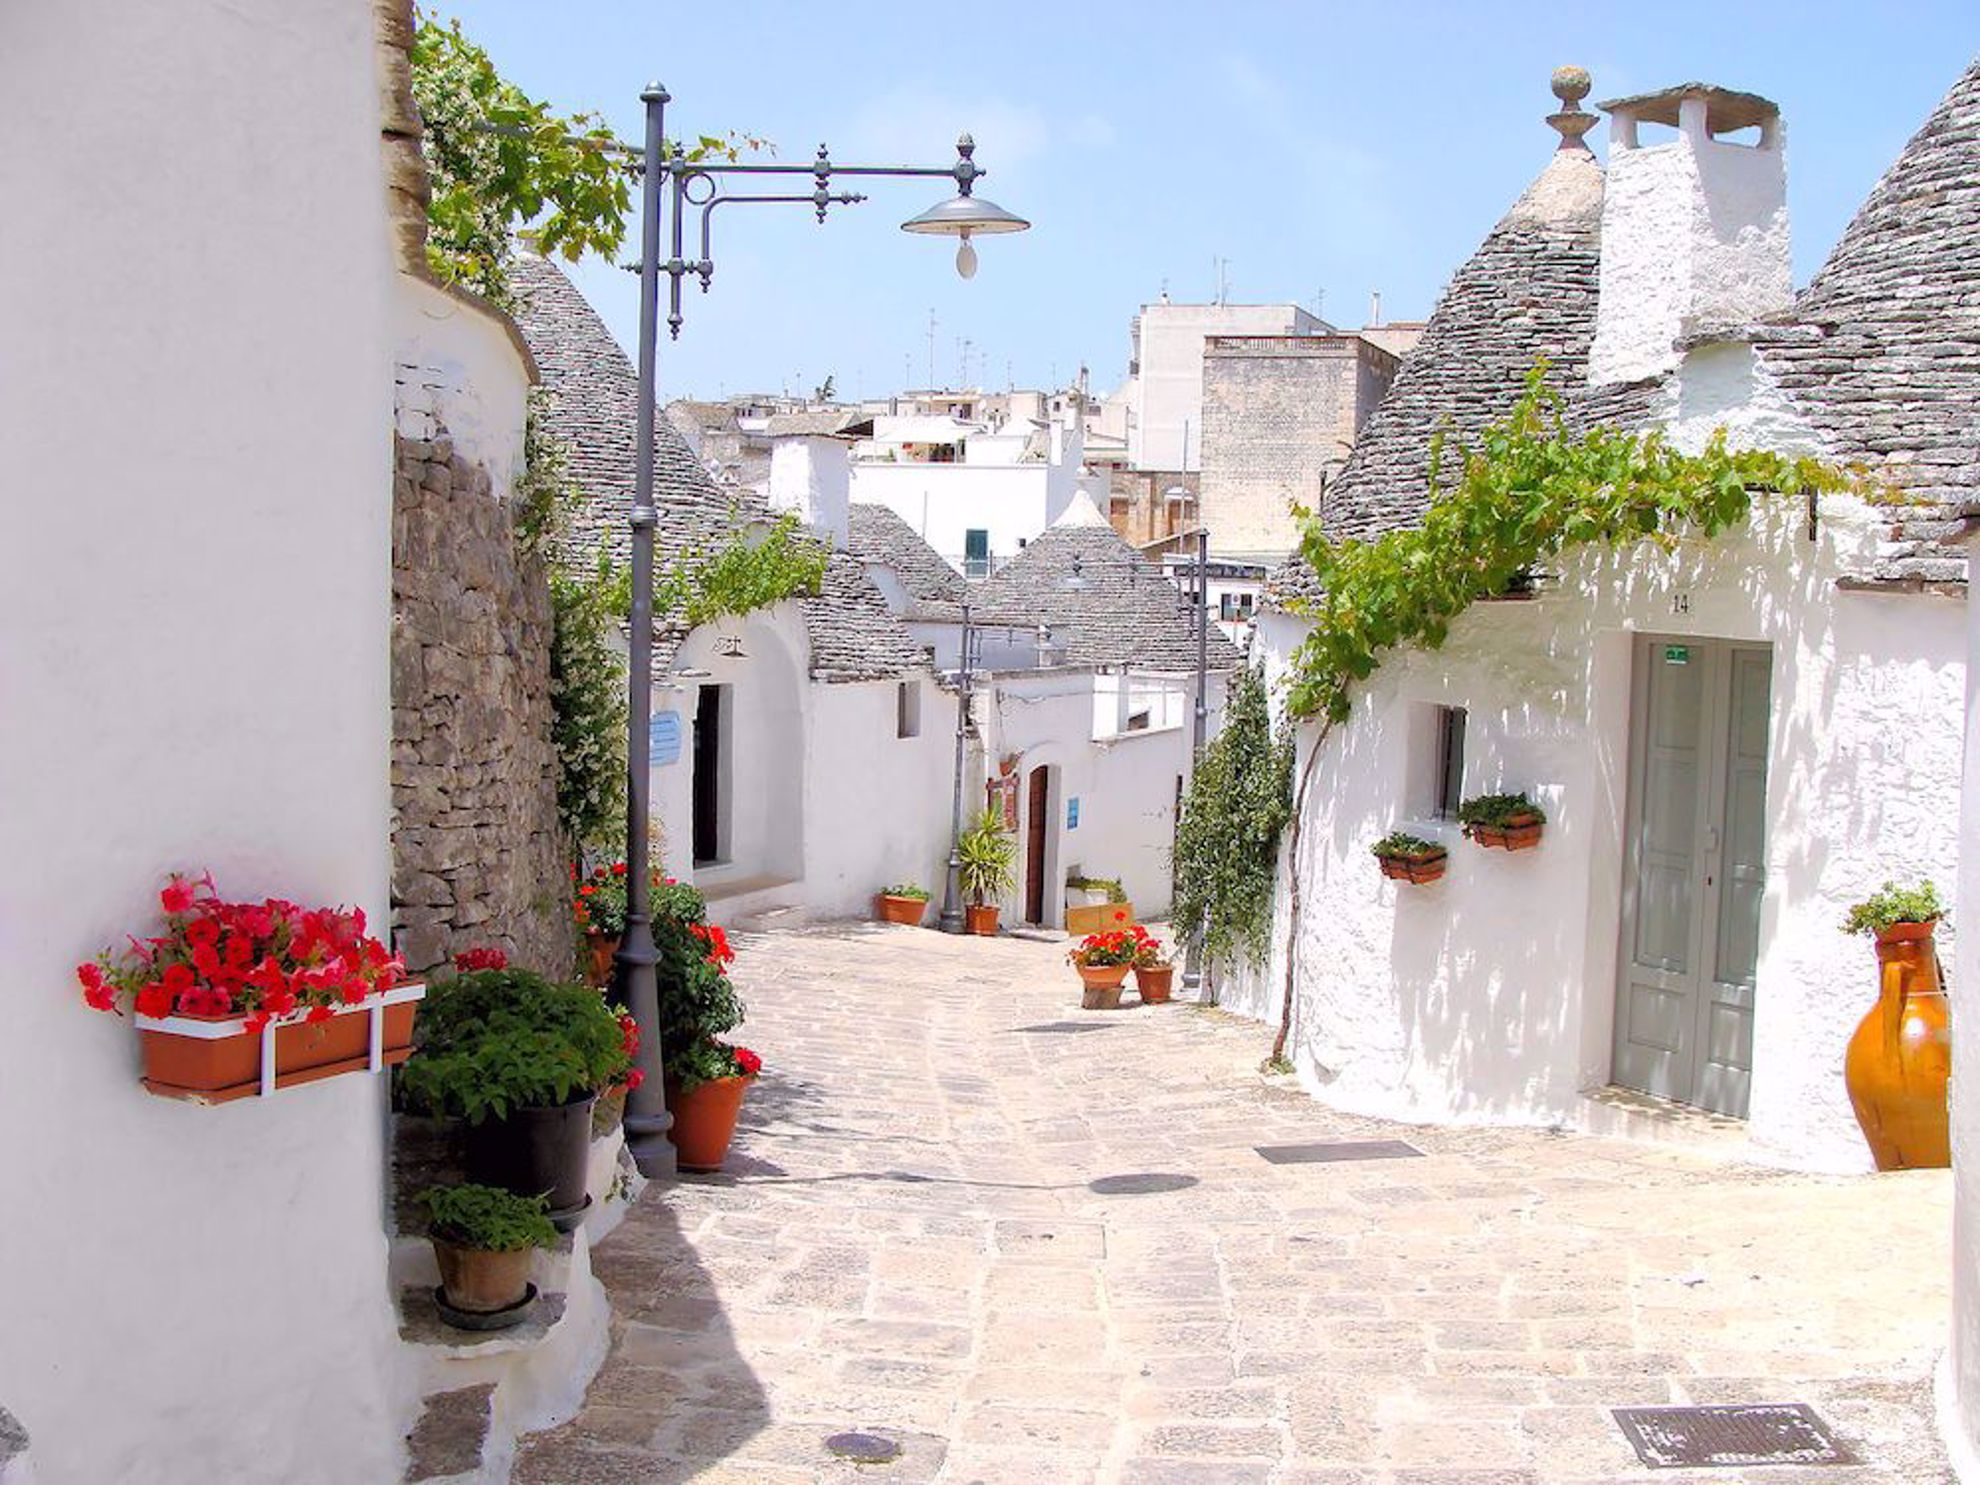 Puglia with trulli homes